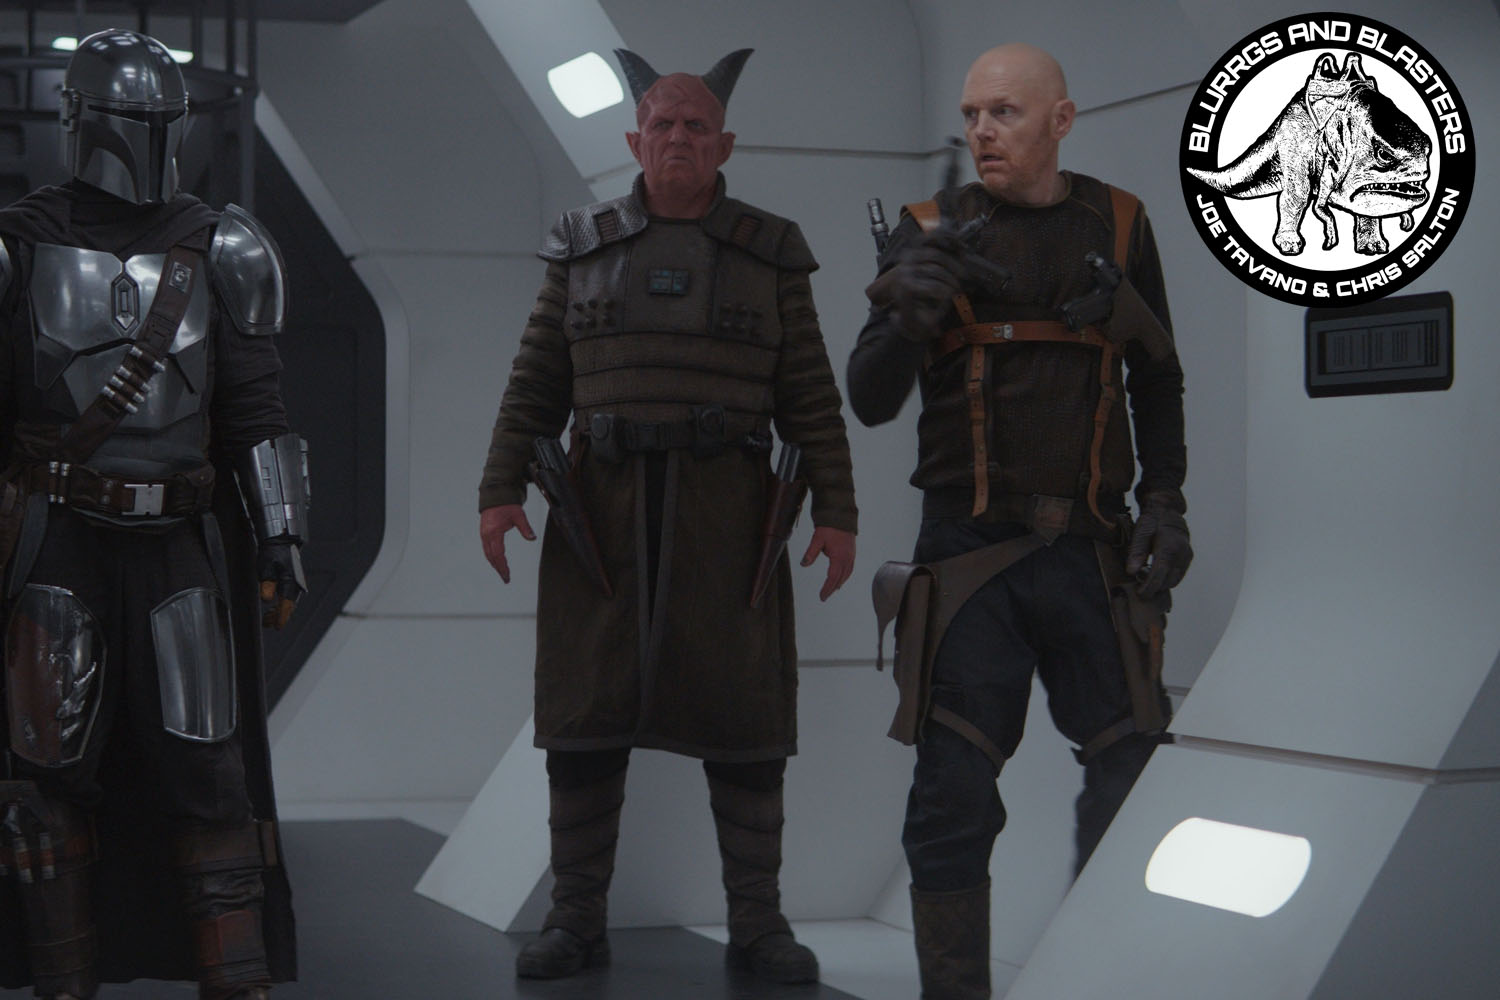 Blurrgs and Blasters: The Mandalorian, Chapter 6: The Prisoner (Brews and Blasters 240)